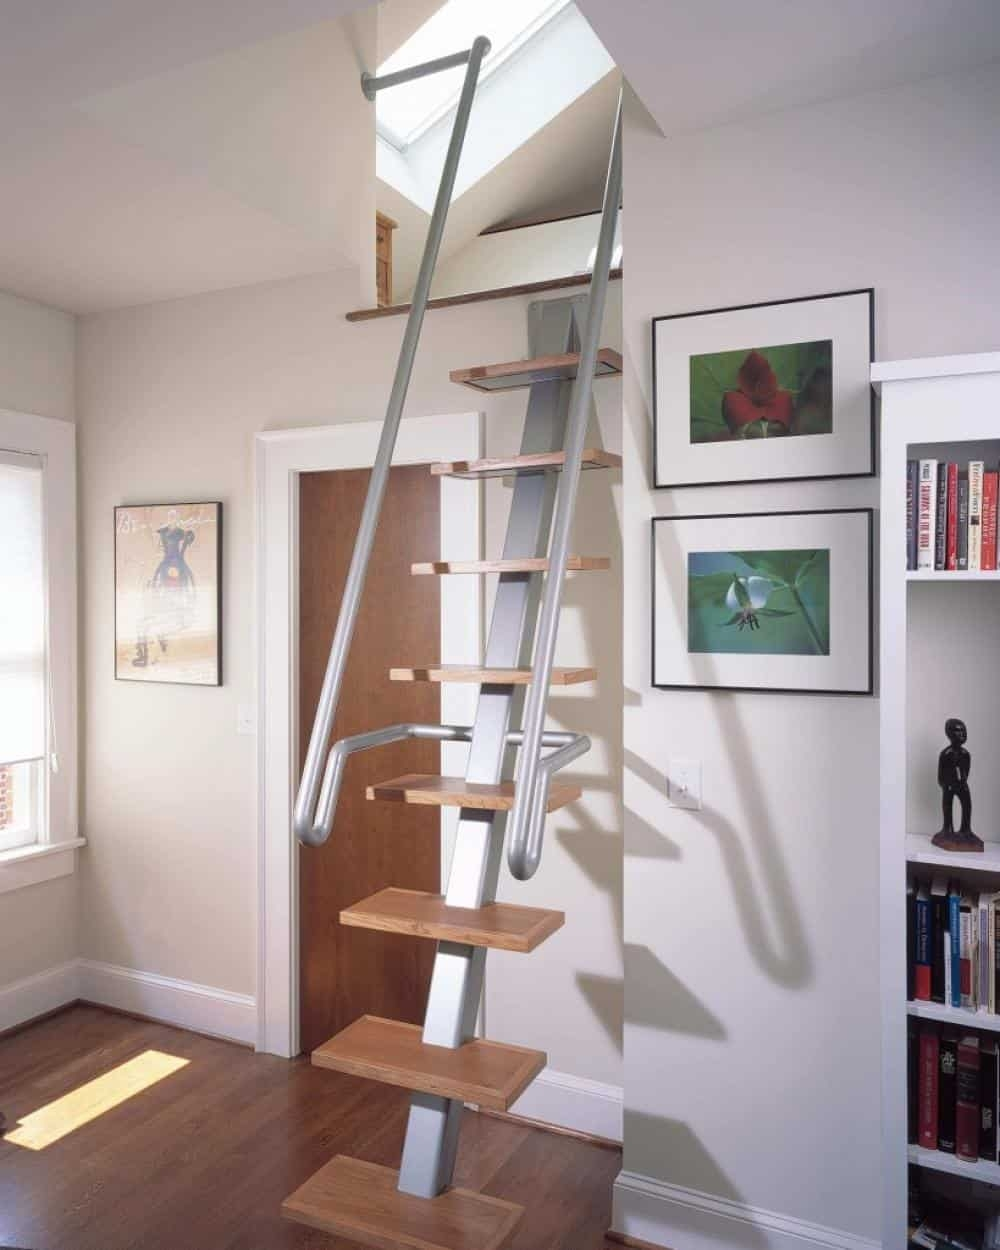 Unique And Creative Staircase Designs For Modern Homes   Concrete Stair Design For Small House